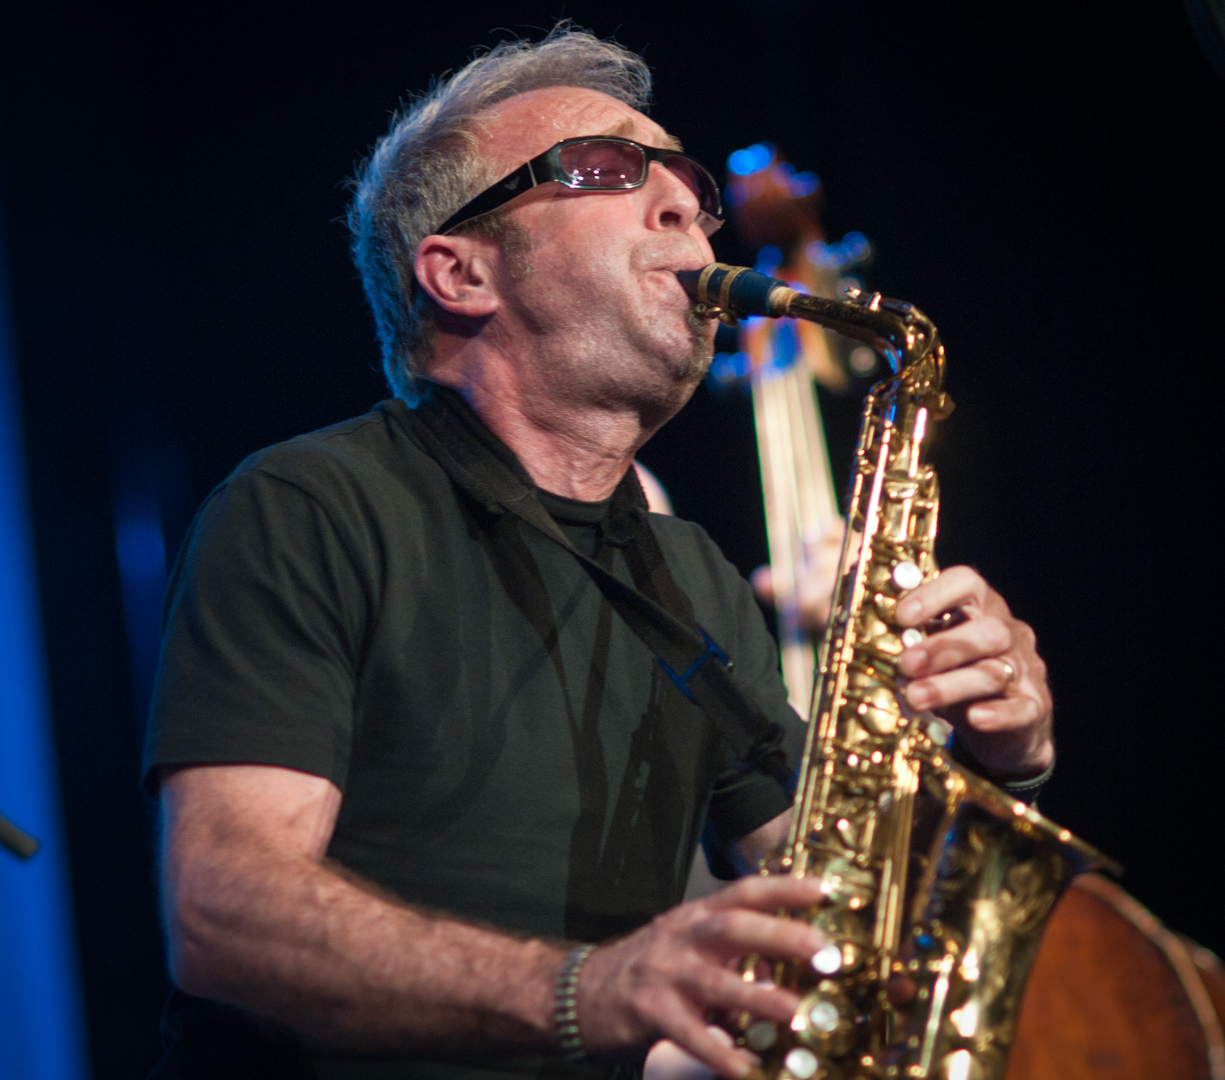 Mars Williams with Peter Brotzmann's Quintet at the Vision Festival 2011